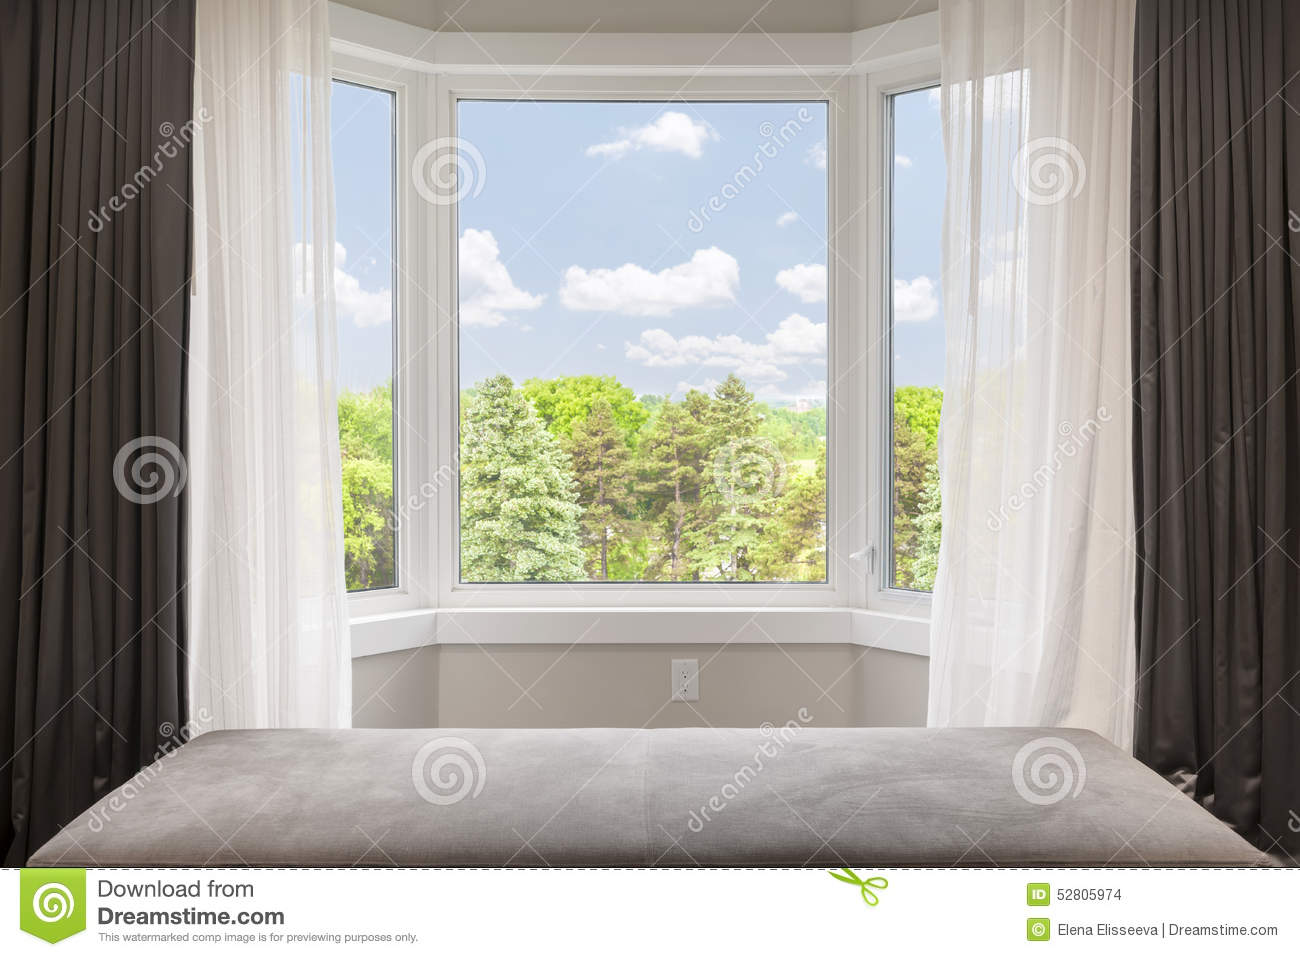 Fen tre en saillie avec la vue d 39 t photo stock image for Fenetre bay window